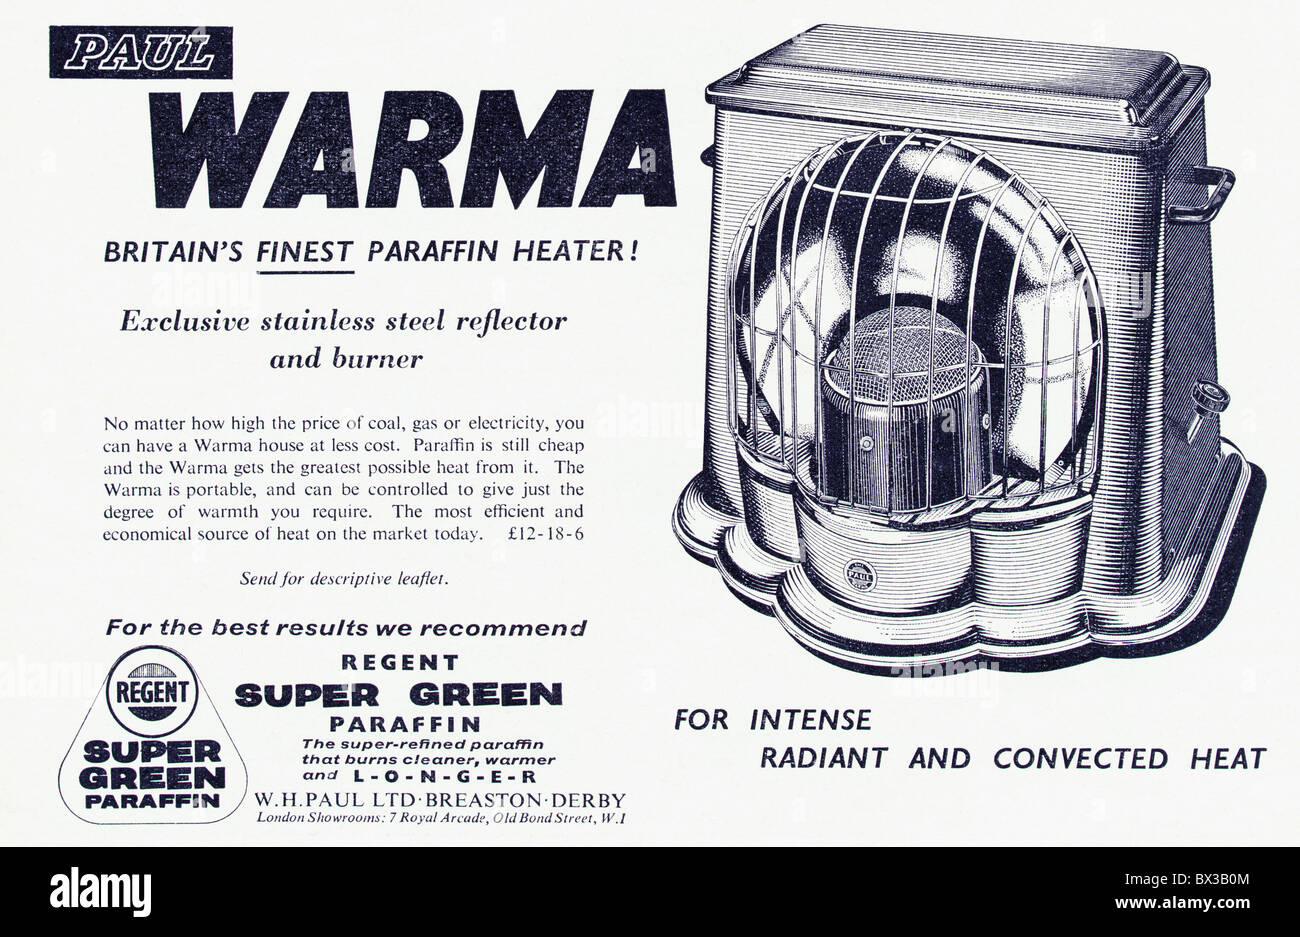 Paraffin heater black and white advert in Punch magazine circa 1958 - Stock Image